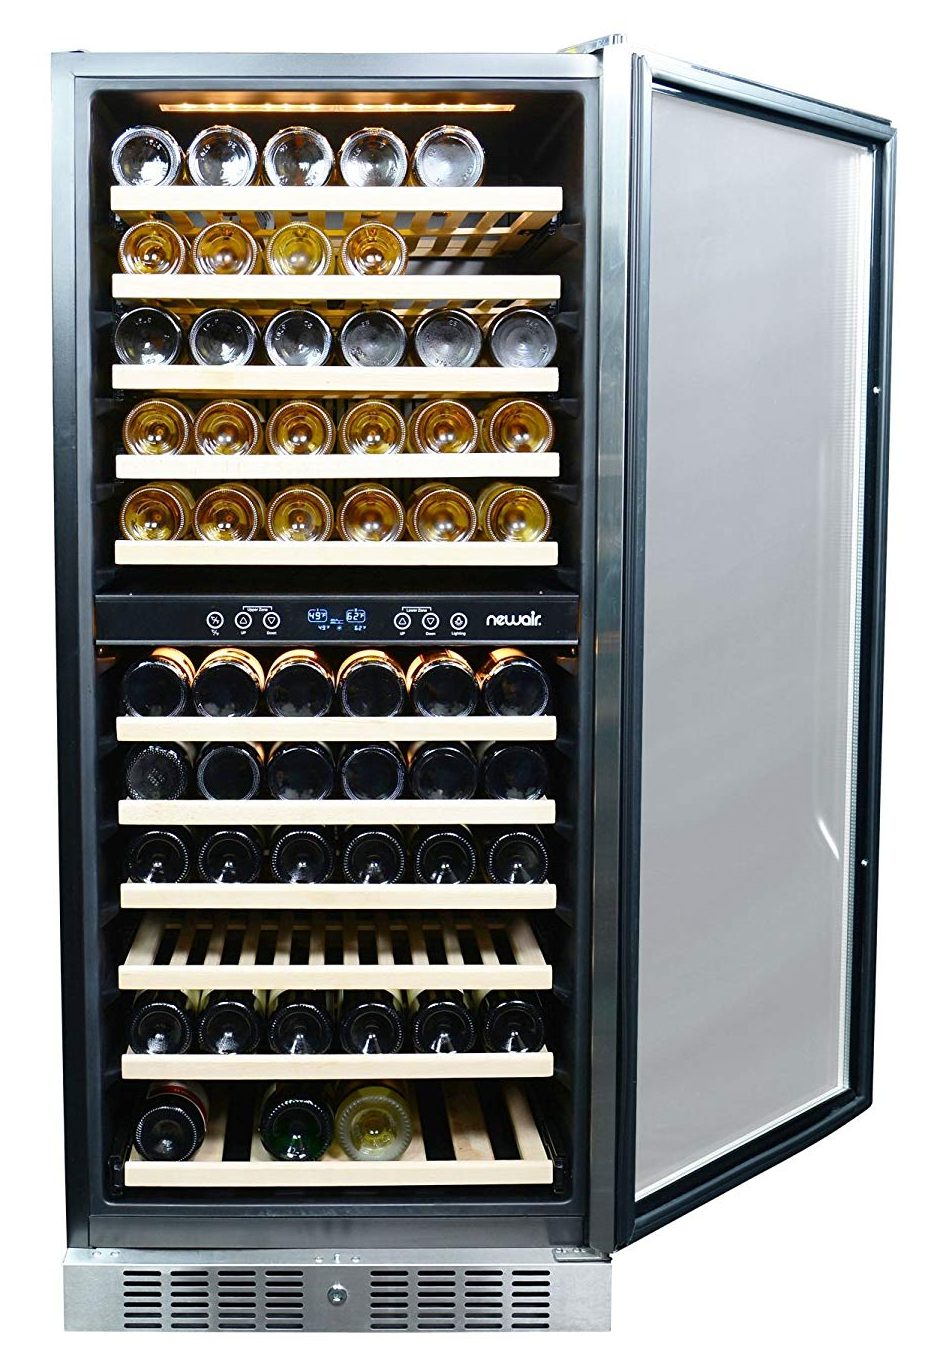 NewAir AWR-1160DB Wine Cooler, 116 Bottle